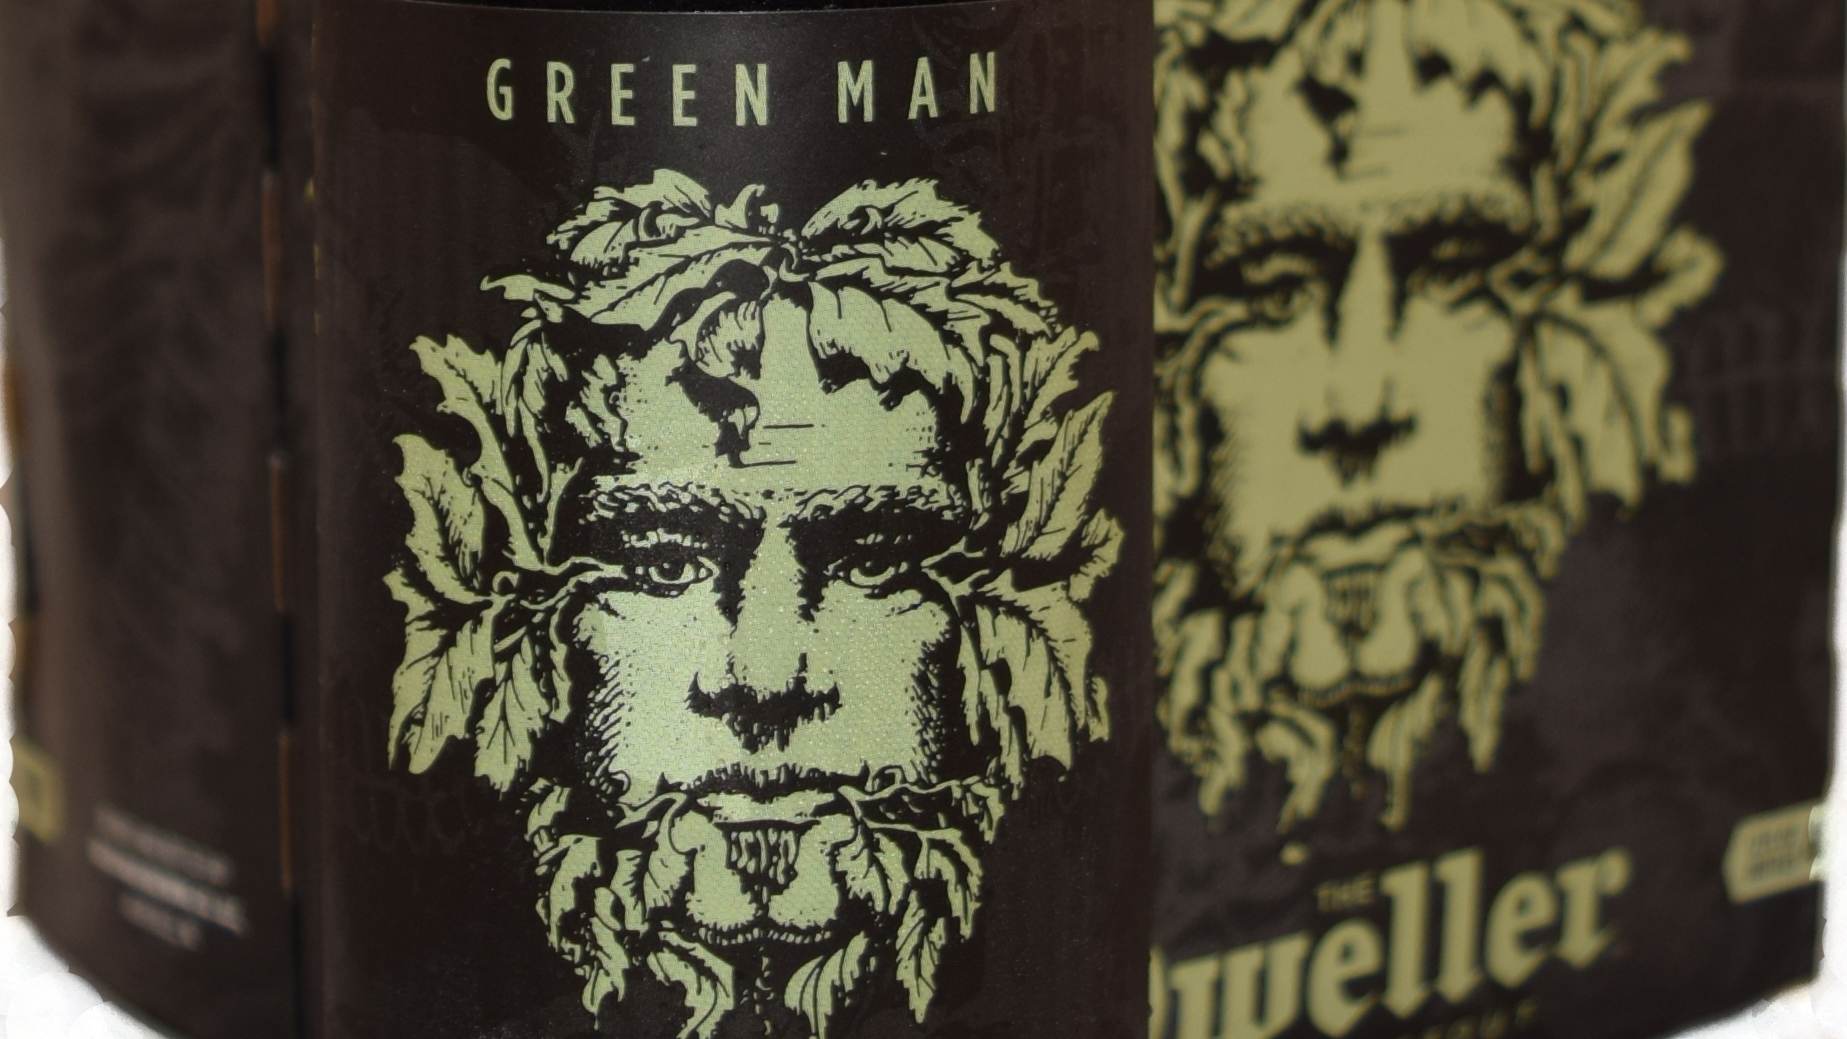 upm-raflatac-case-green-man.jpg